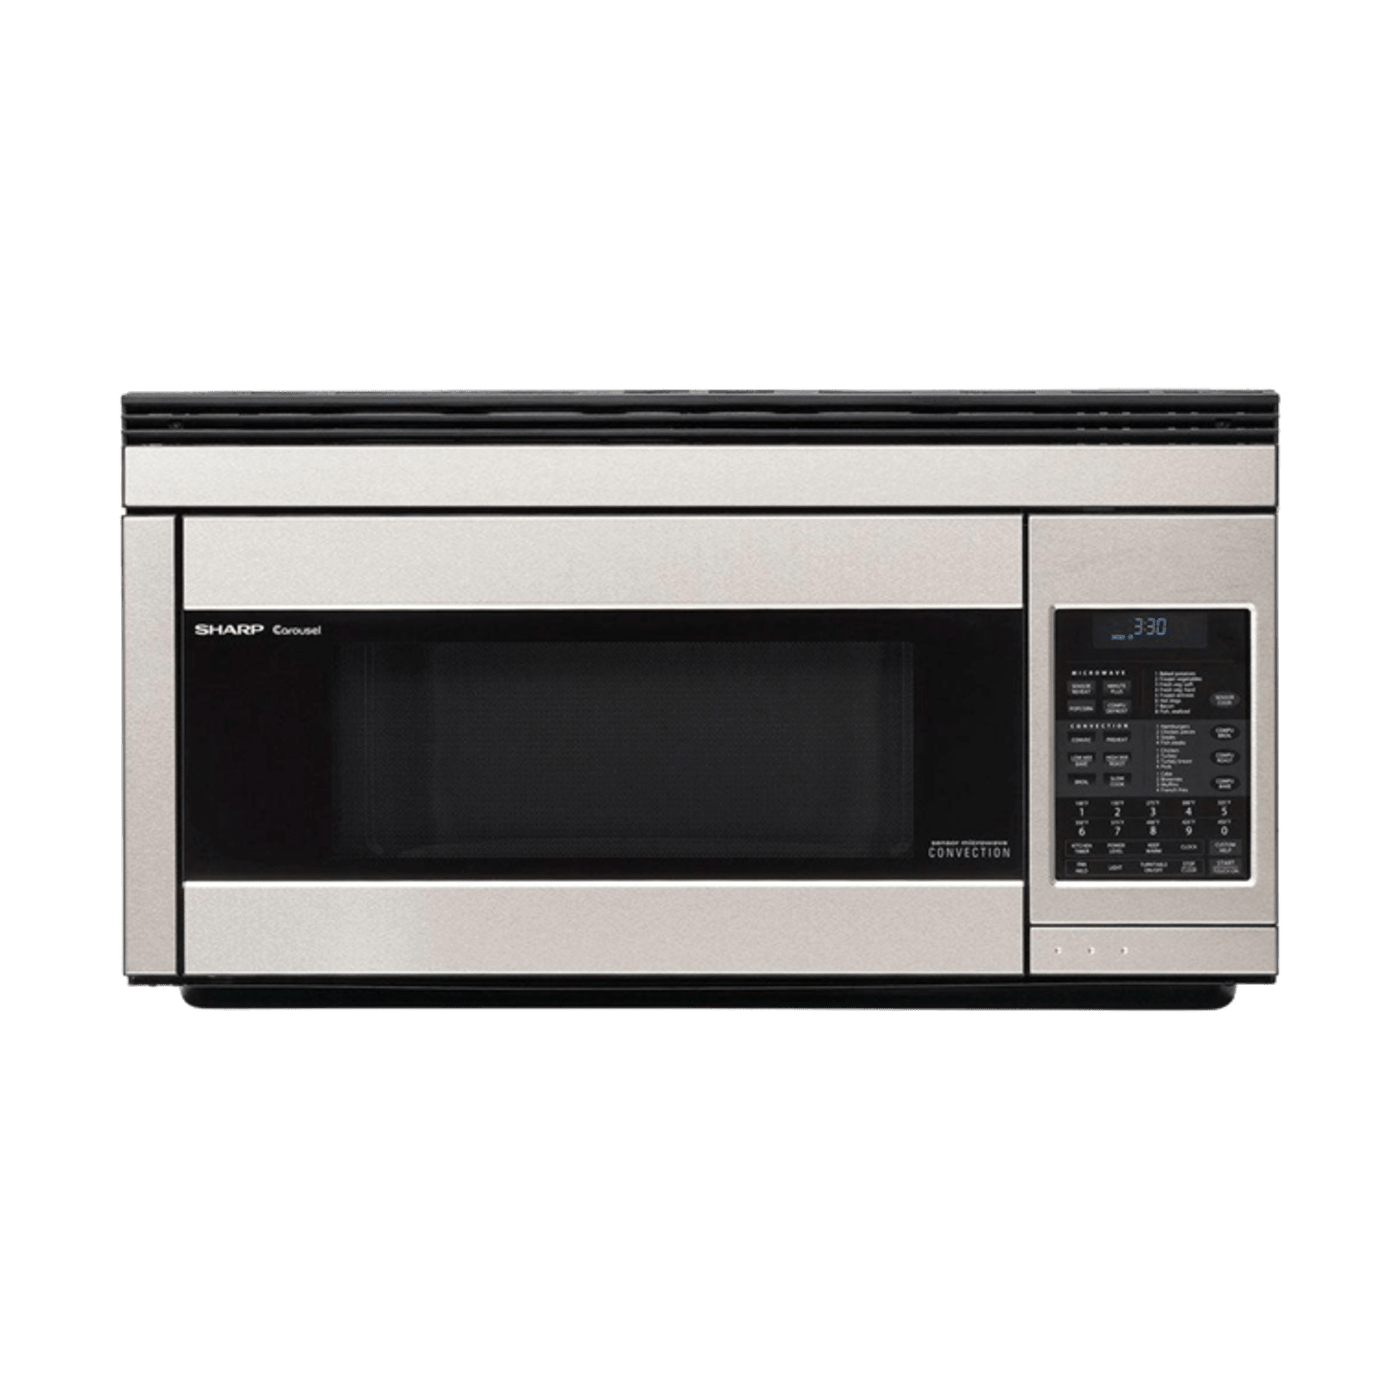 Ft Stainless Steel Over The Range Microwave Convection Sharp R1874ty